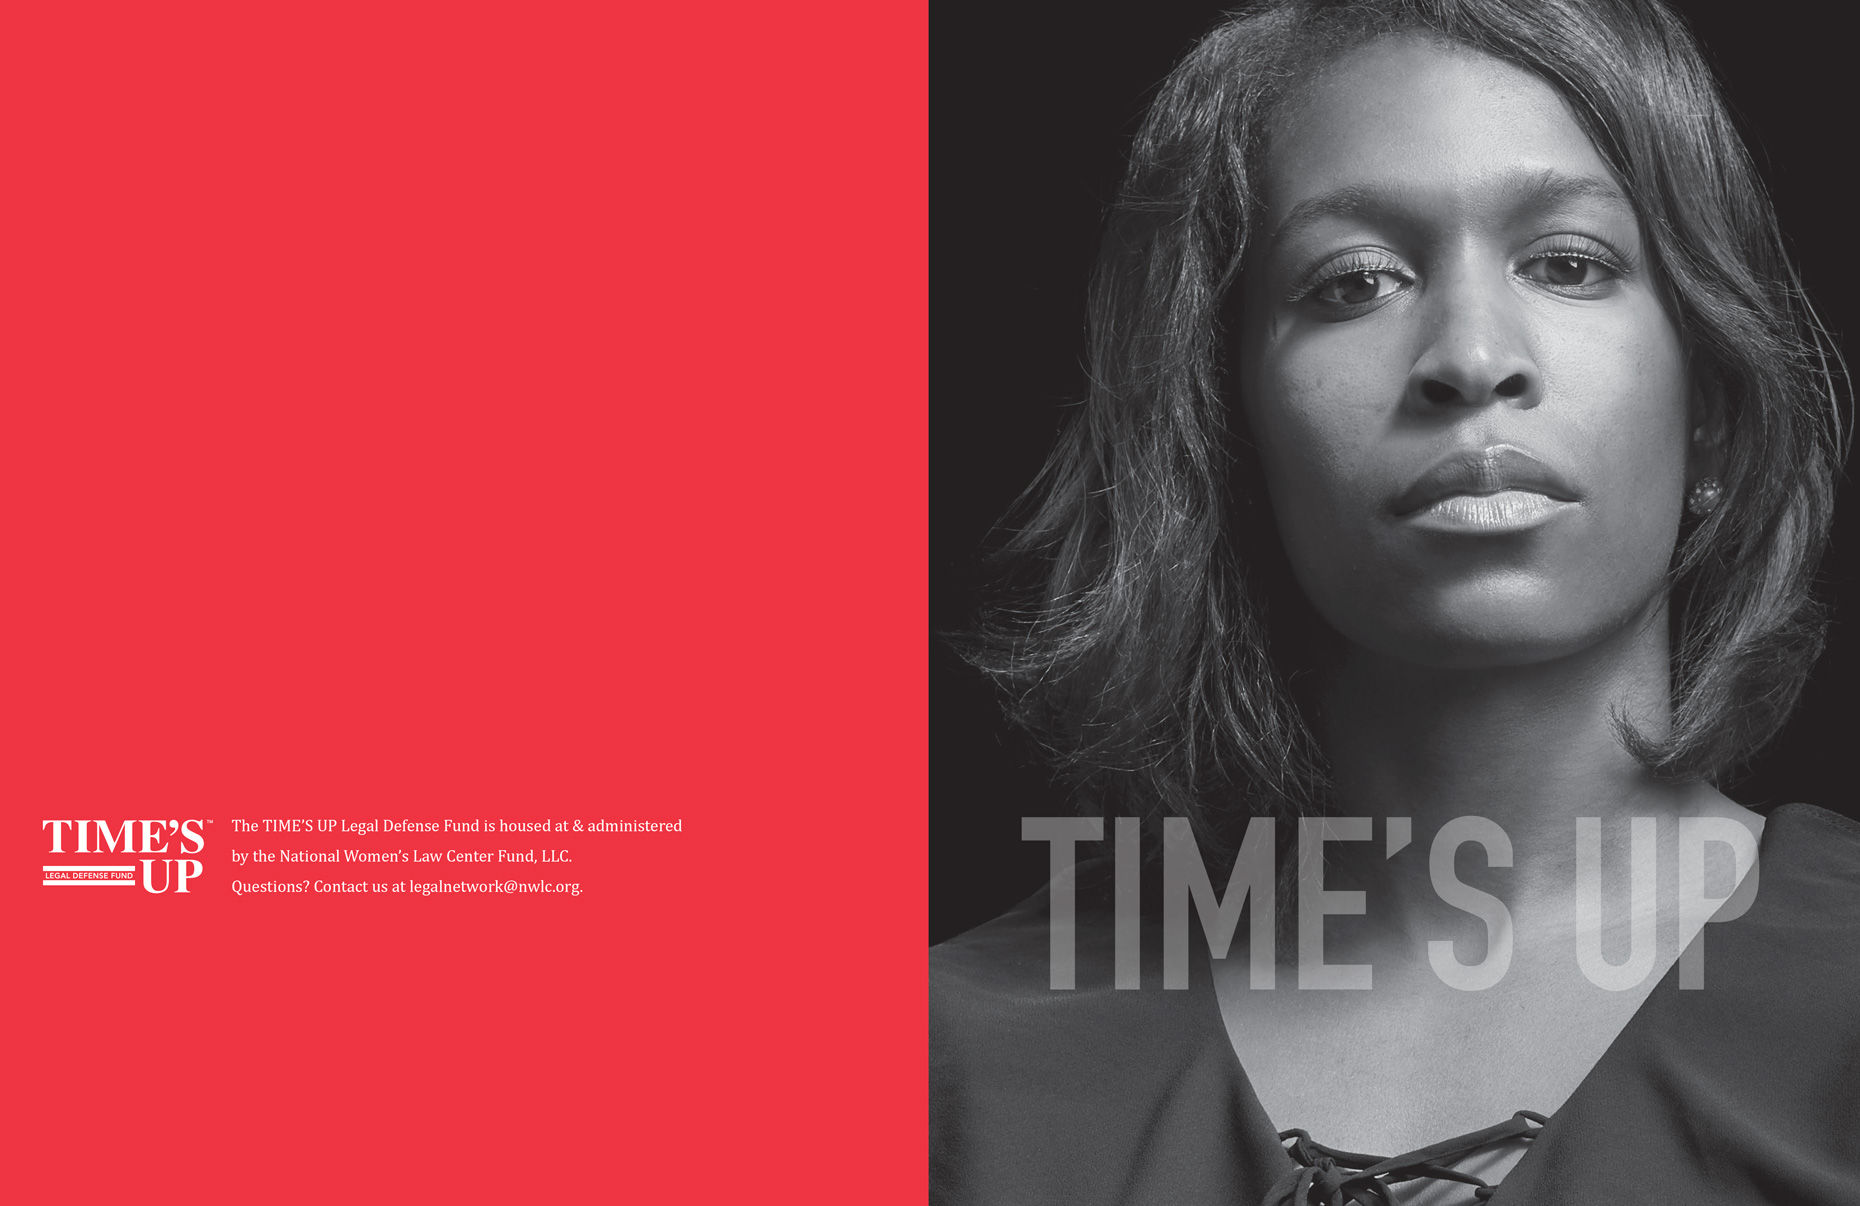 times-up-cover-black-woman-editorial